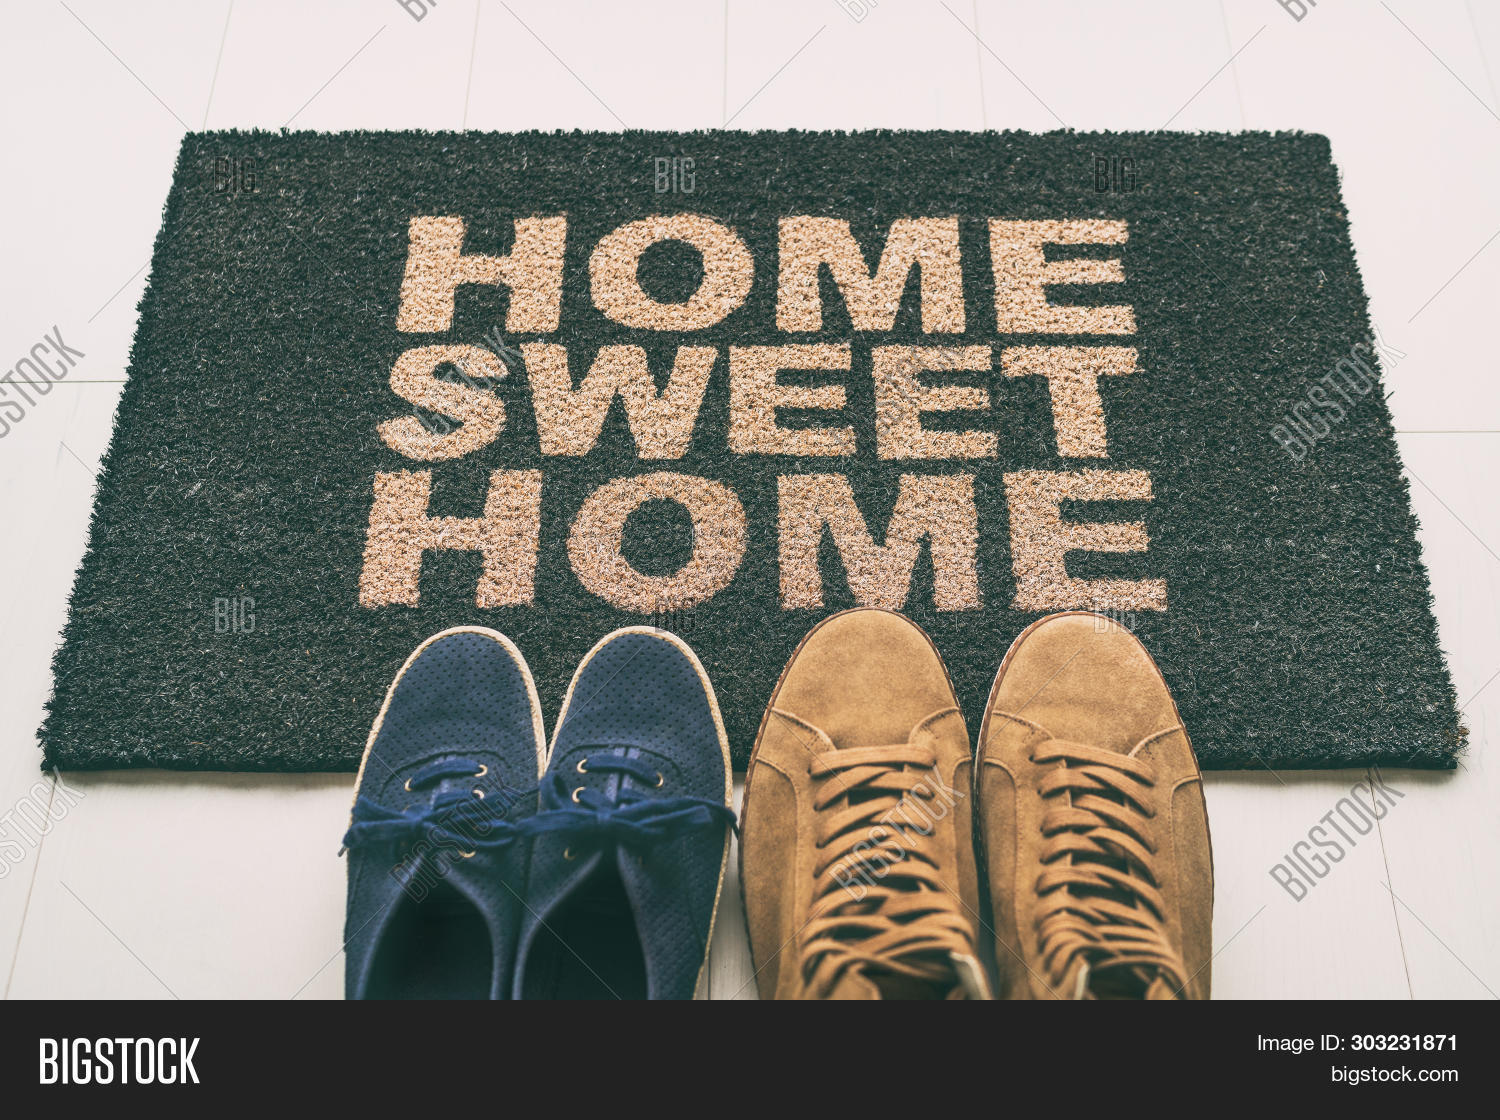 apartment,autumn,background,buyer,buyers,condo,couple,door,doormat,entrance,estate,fashion,first,floor,footwear,front,home,home sweet home,homeowner,homeowners,house,indoors,lovers,man,mat,move,moving,moving in,new,nobody,owners,pair,real,relationship,relax,rug,rung,shoe,shoes,sign,sneakers,suede,sweet,texture,together,welcome,woman,women,womens,young